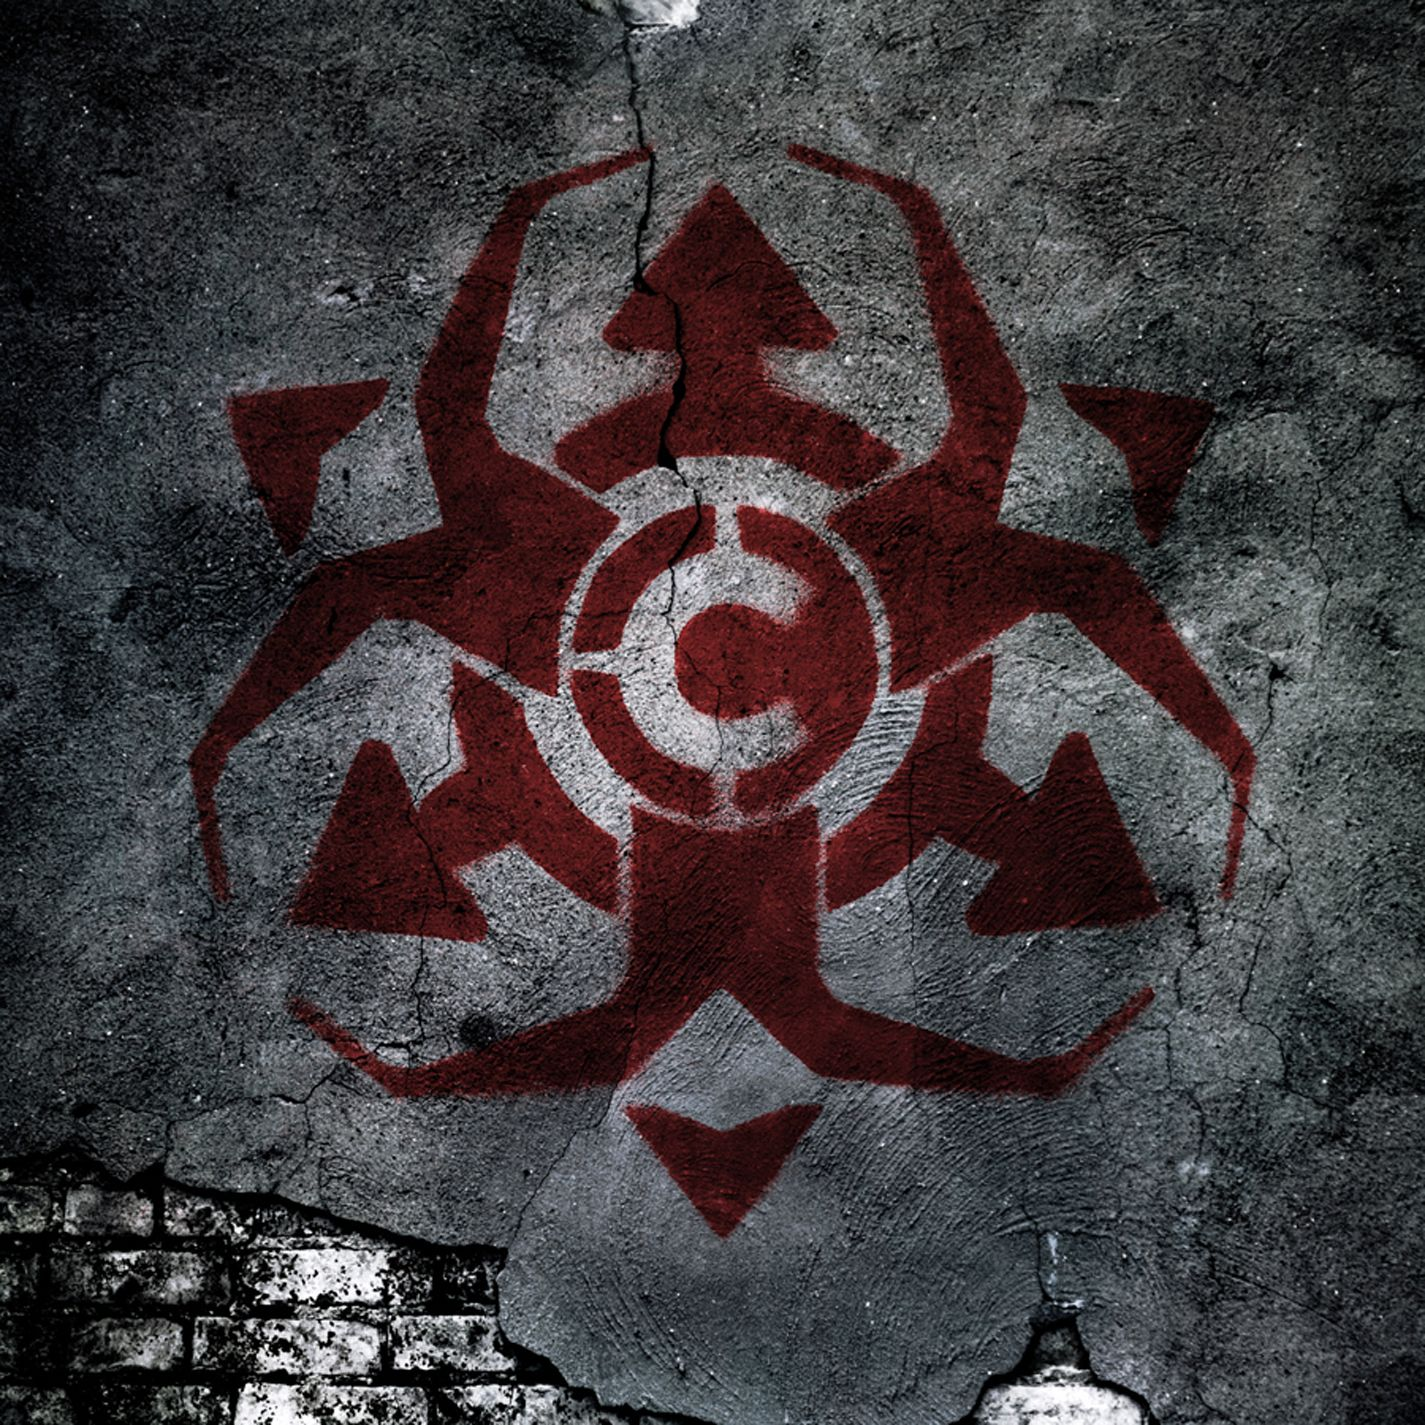 Chimaira. The Infection